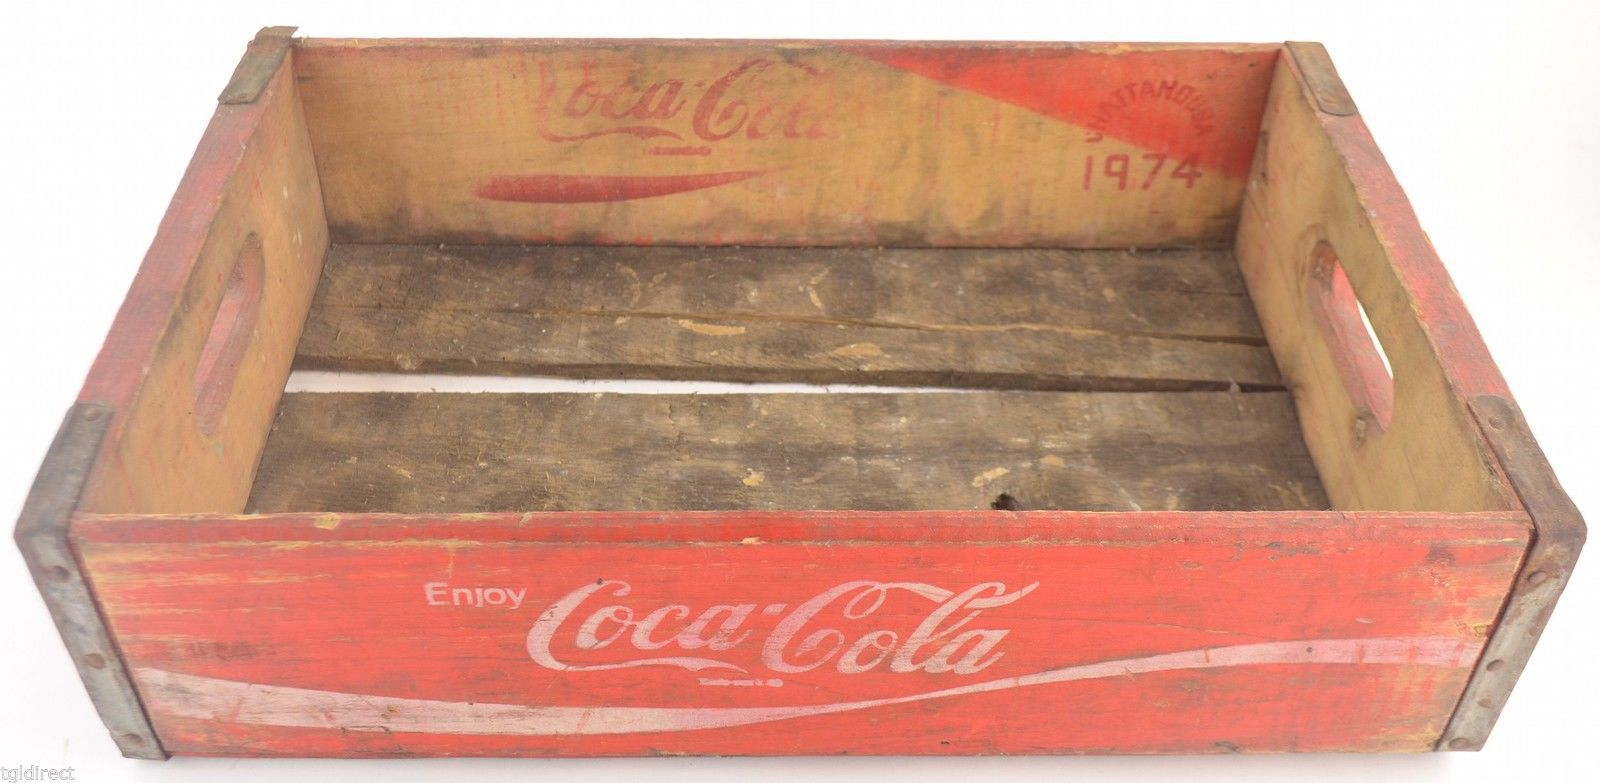 Coca Cola Crate Red Wooden Coke Carrier 1974 Chattanooga Collectible Soda Pop